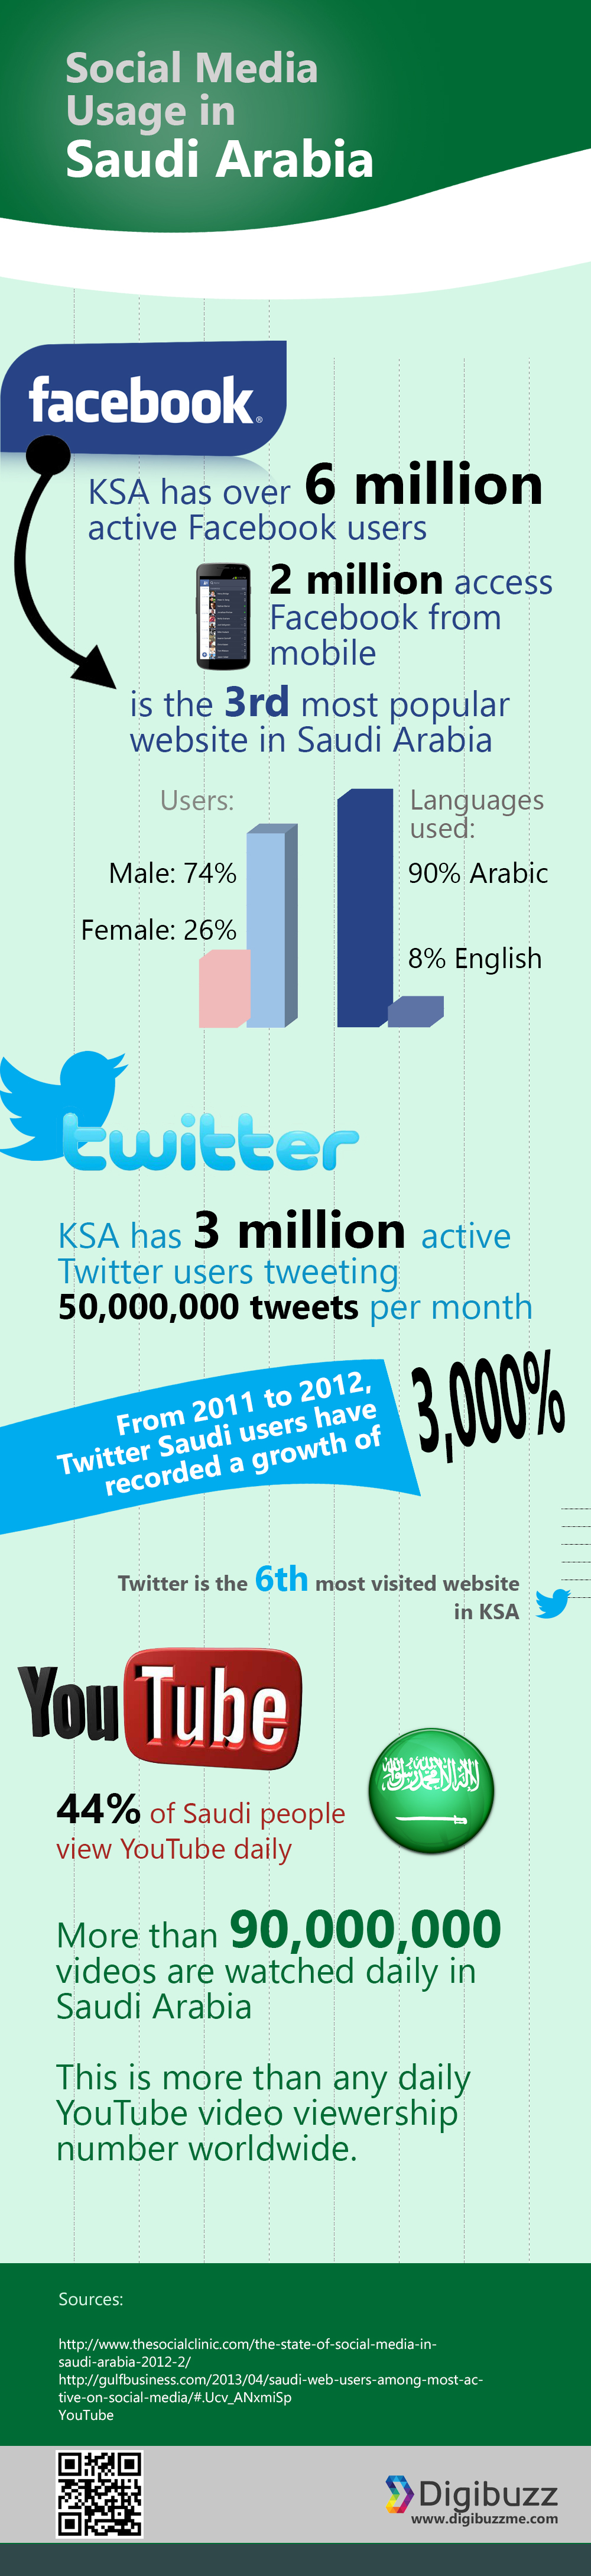 Social Media Usage in Saudi Arabia [INFOGRAPHIC] | All About